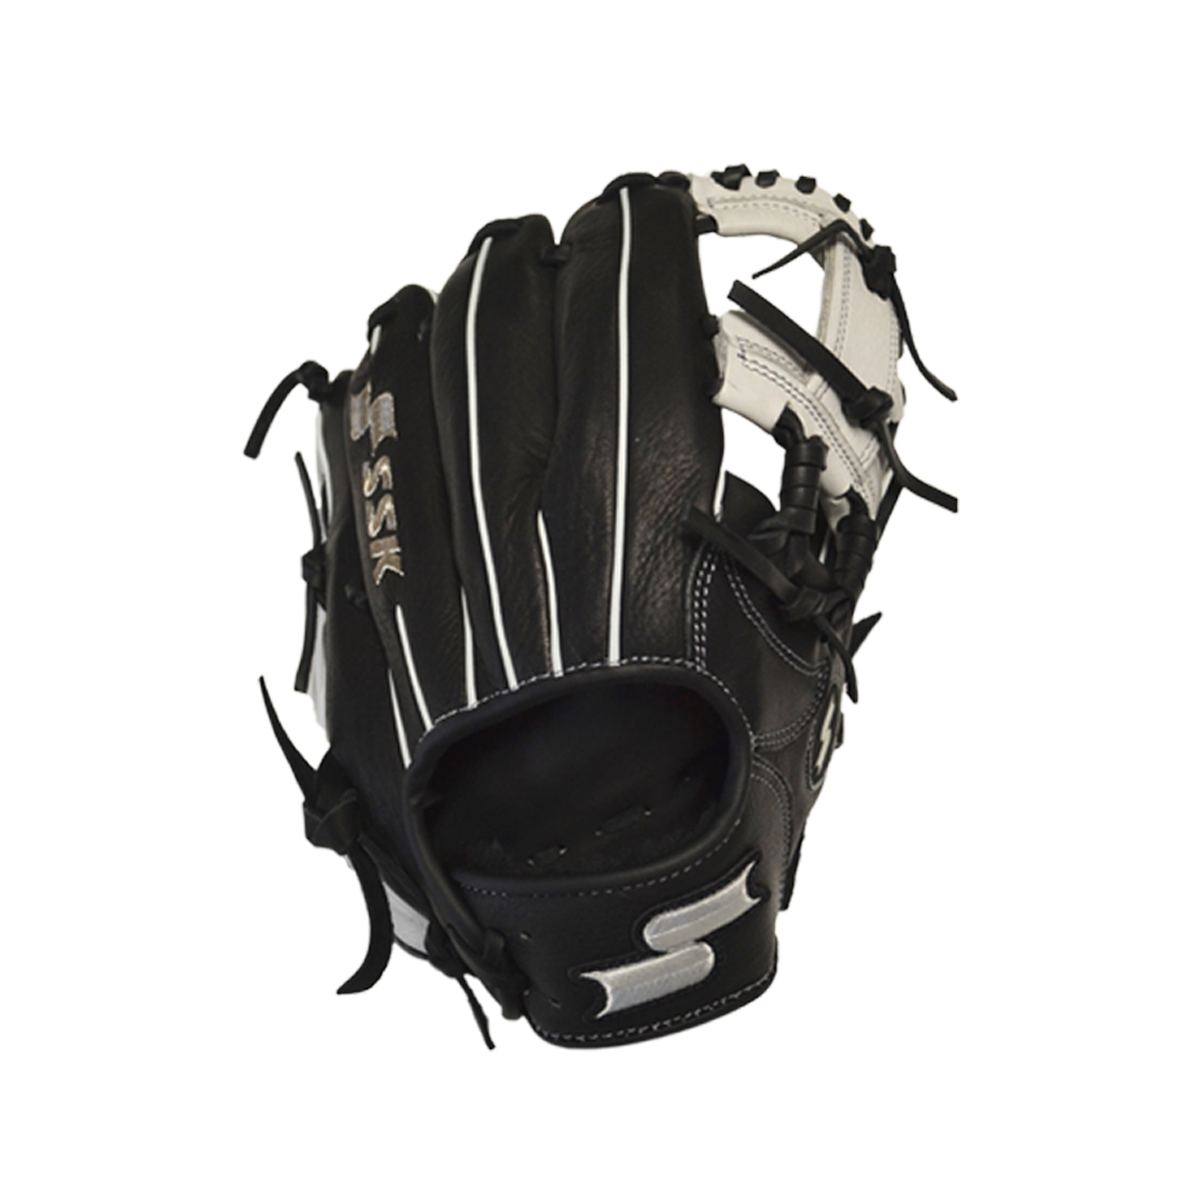 ssk-edge-pro-baseball-glove-11-5-right-hand-throw-i-web S16150CI-RightHandThrow SSK 083351458584 Culture Tradition Greatness words that best describe SSK and their manufacturing